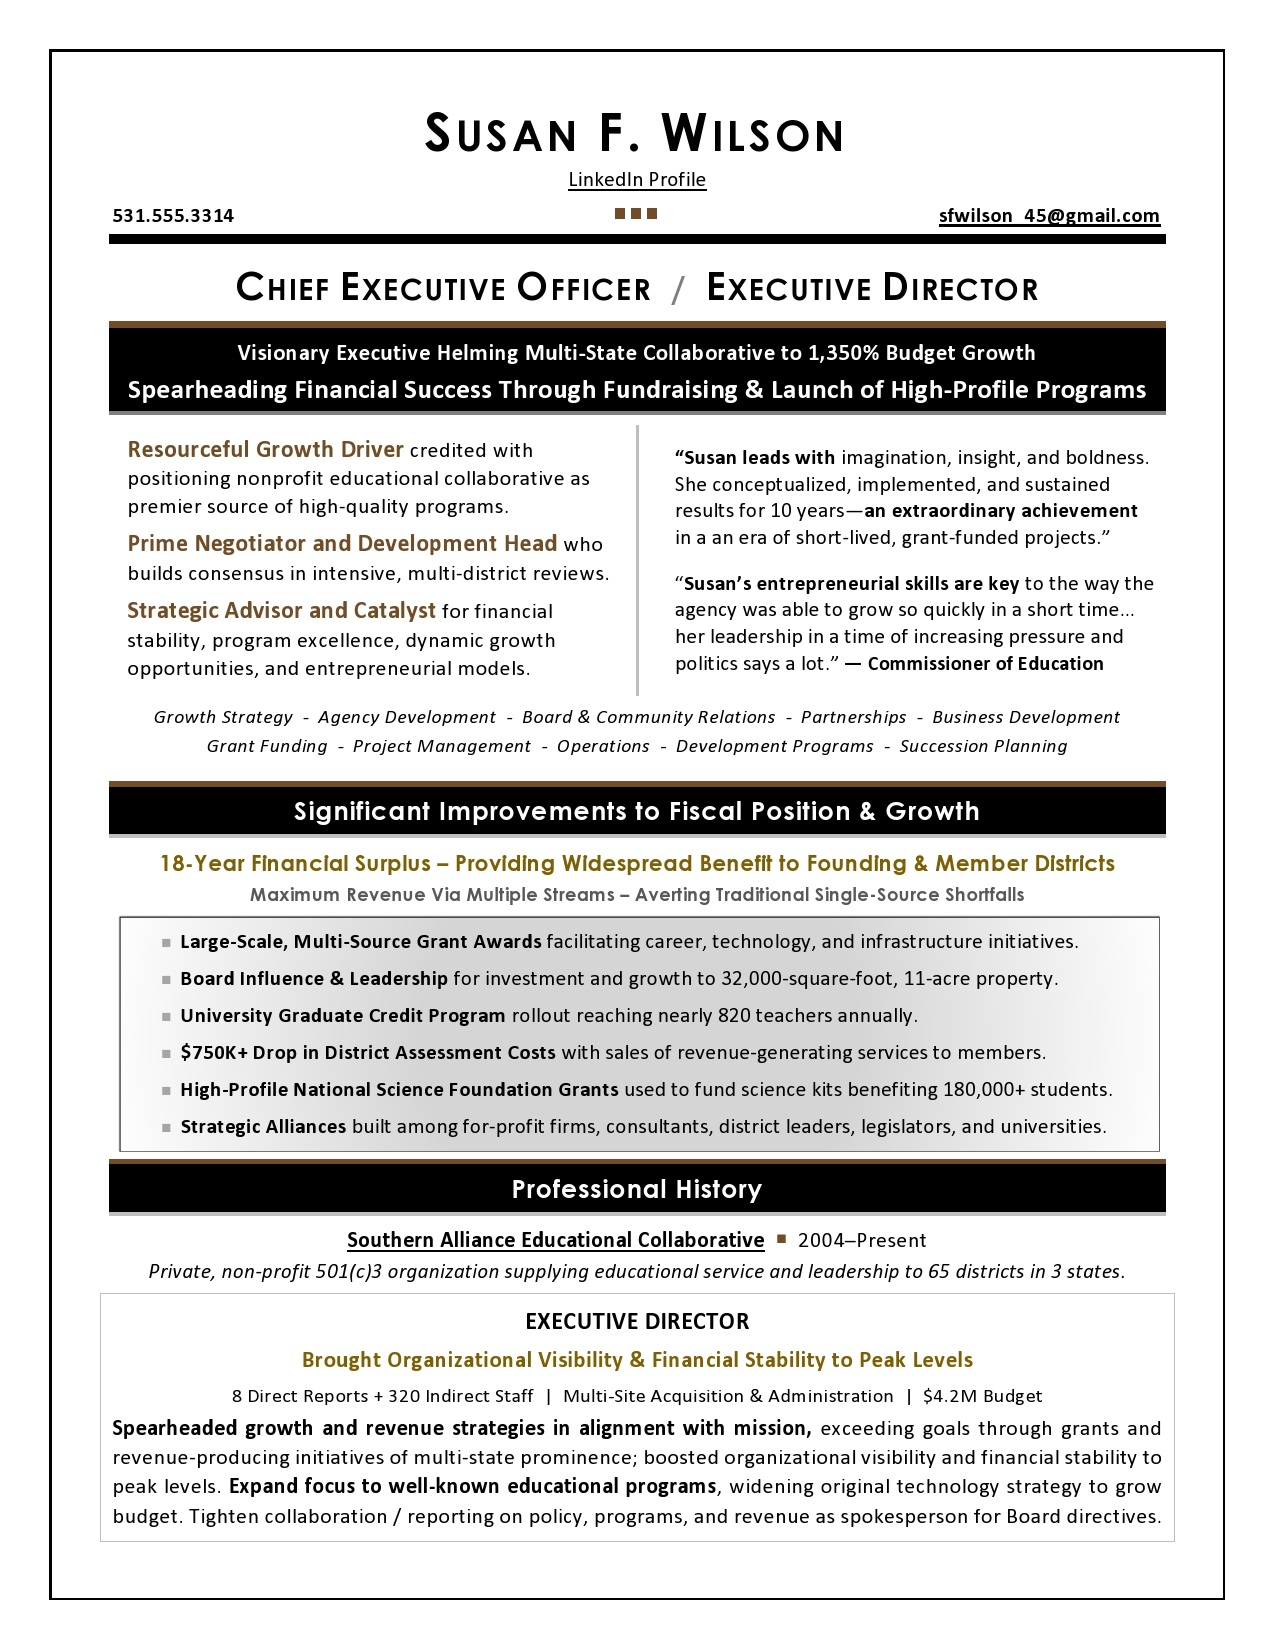 executive resume writing services top writers sample for award nomination nonprofit Resume Sample Resume For Award Nomination